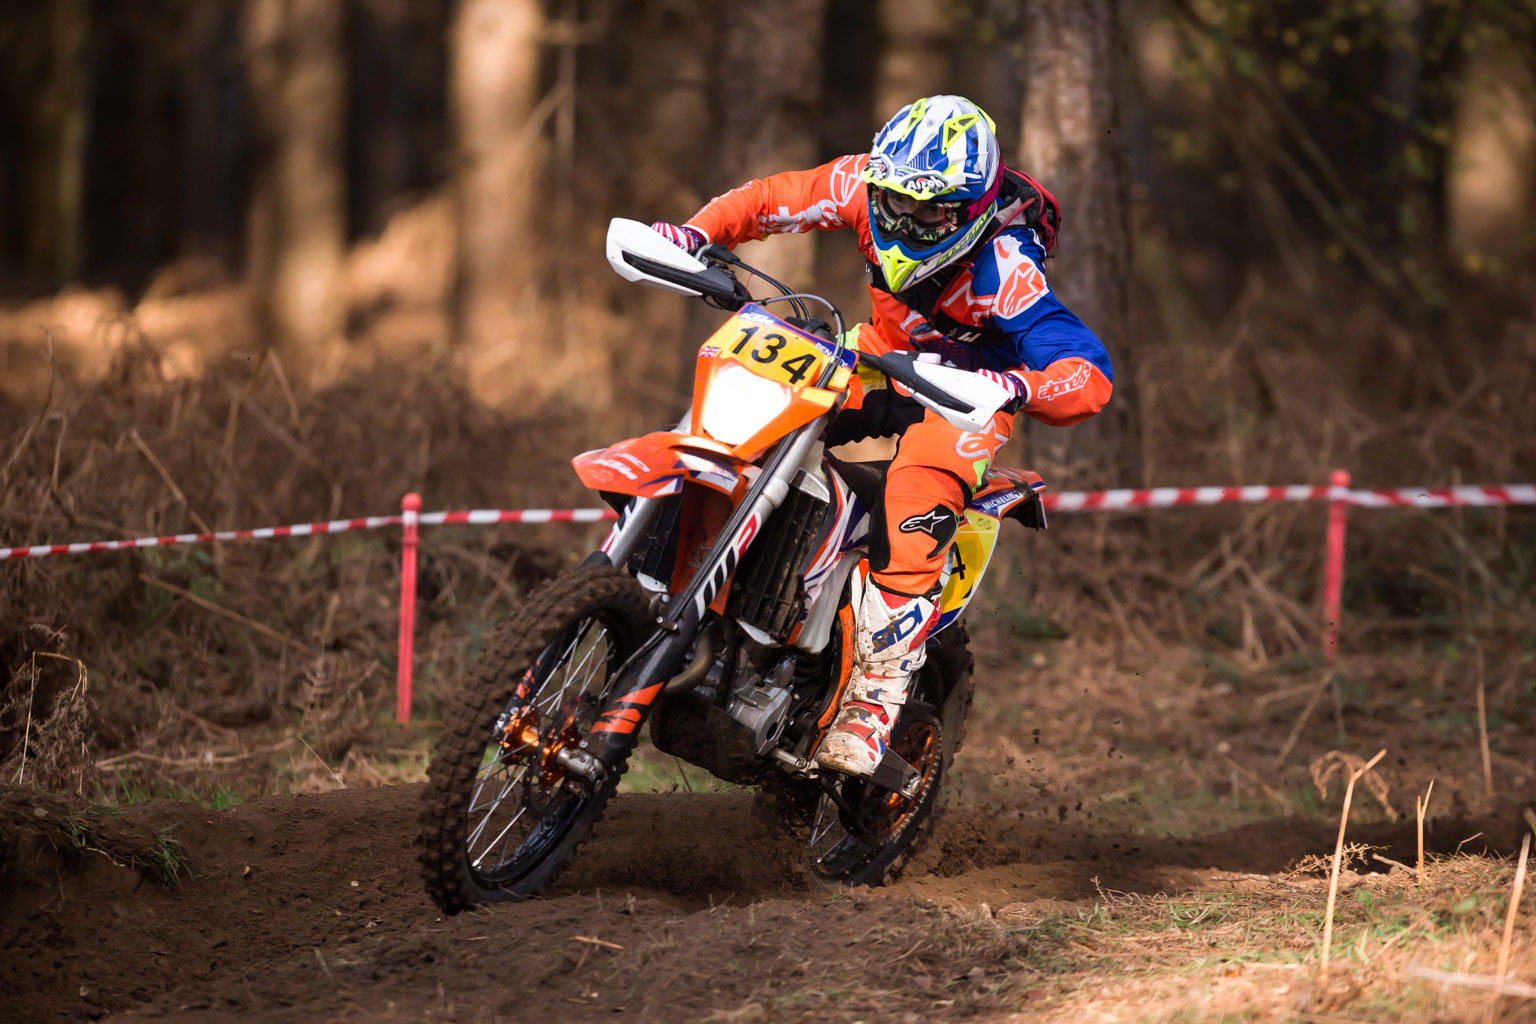 Ben Key (M&M Signs KTM) going quick